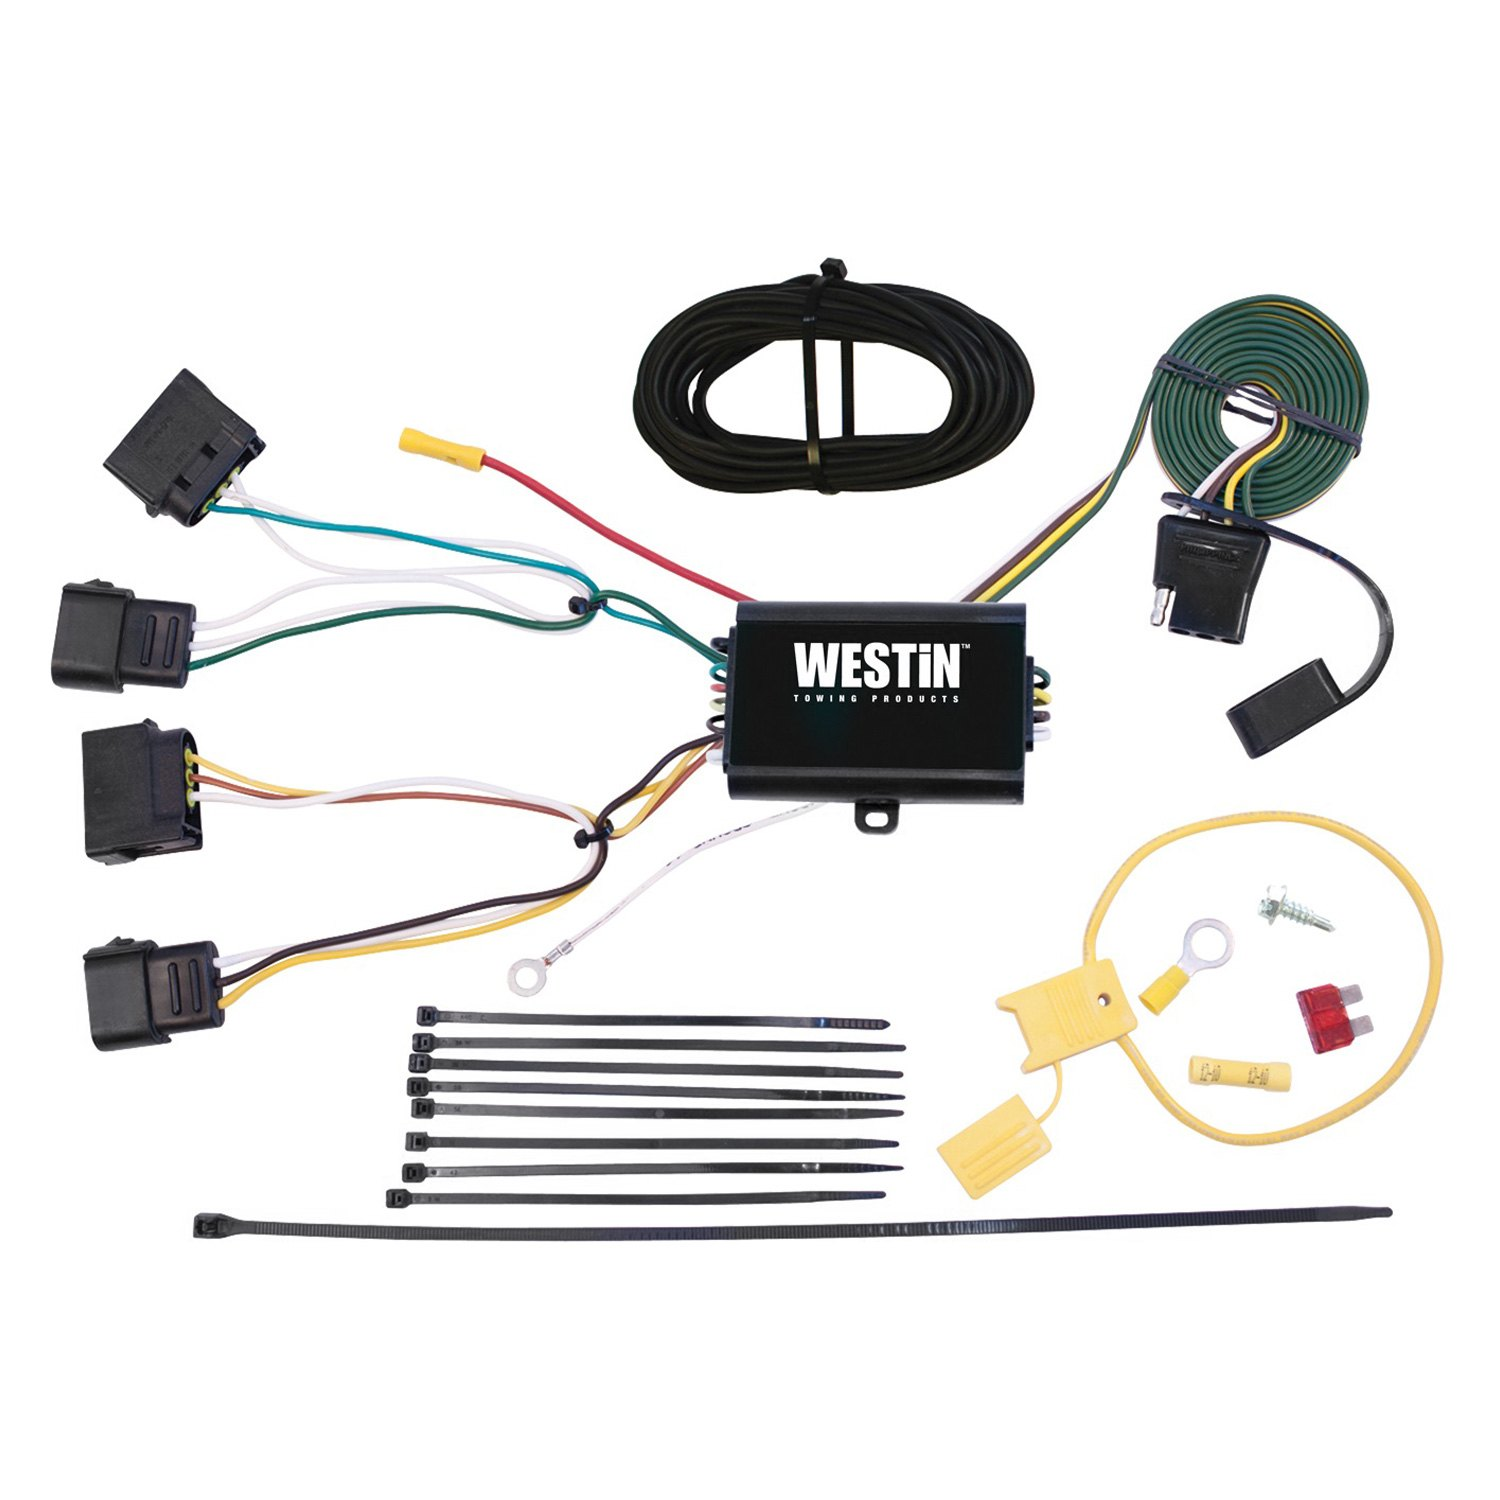 2010 Ford Escape Towing Wiring Harness